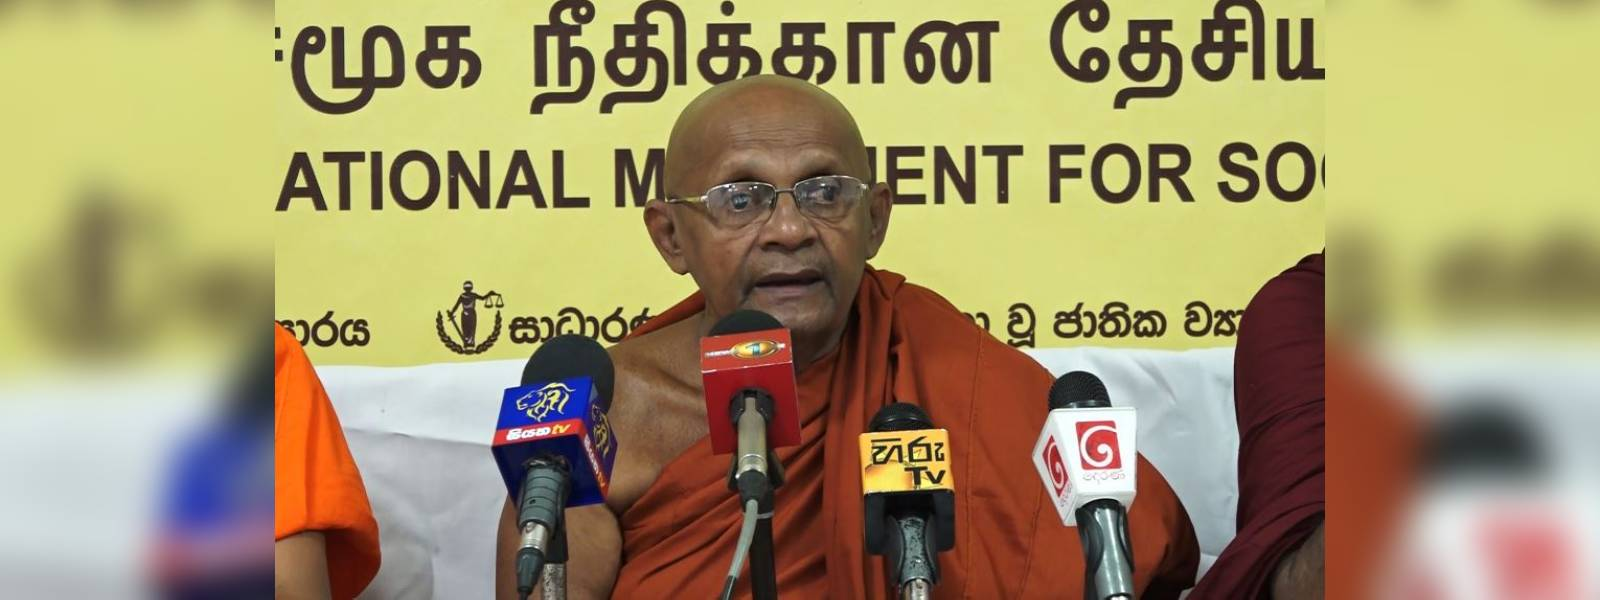 20A can't resolve problems of the people, Chief Sanghanayake says